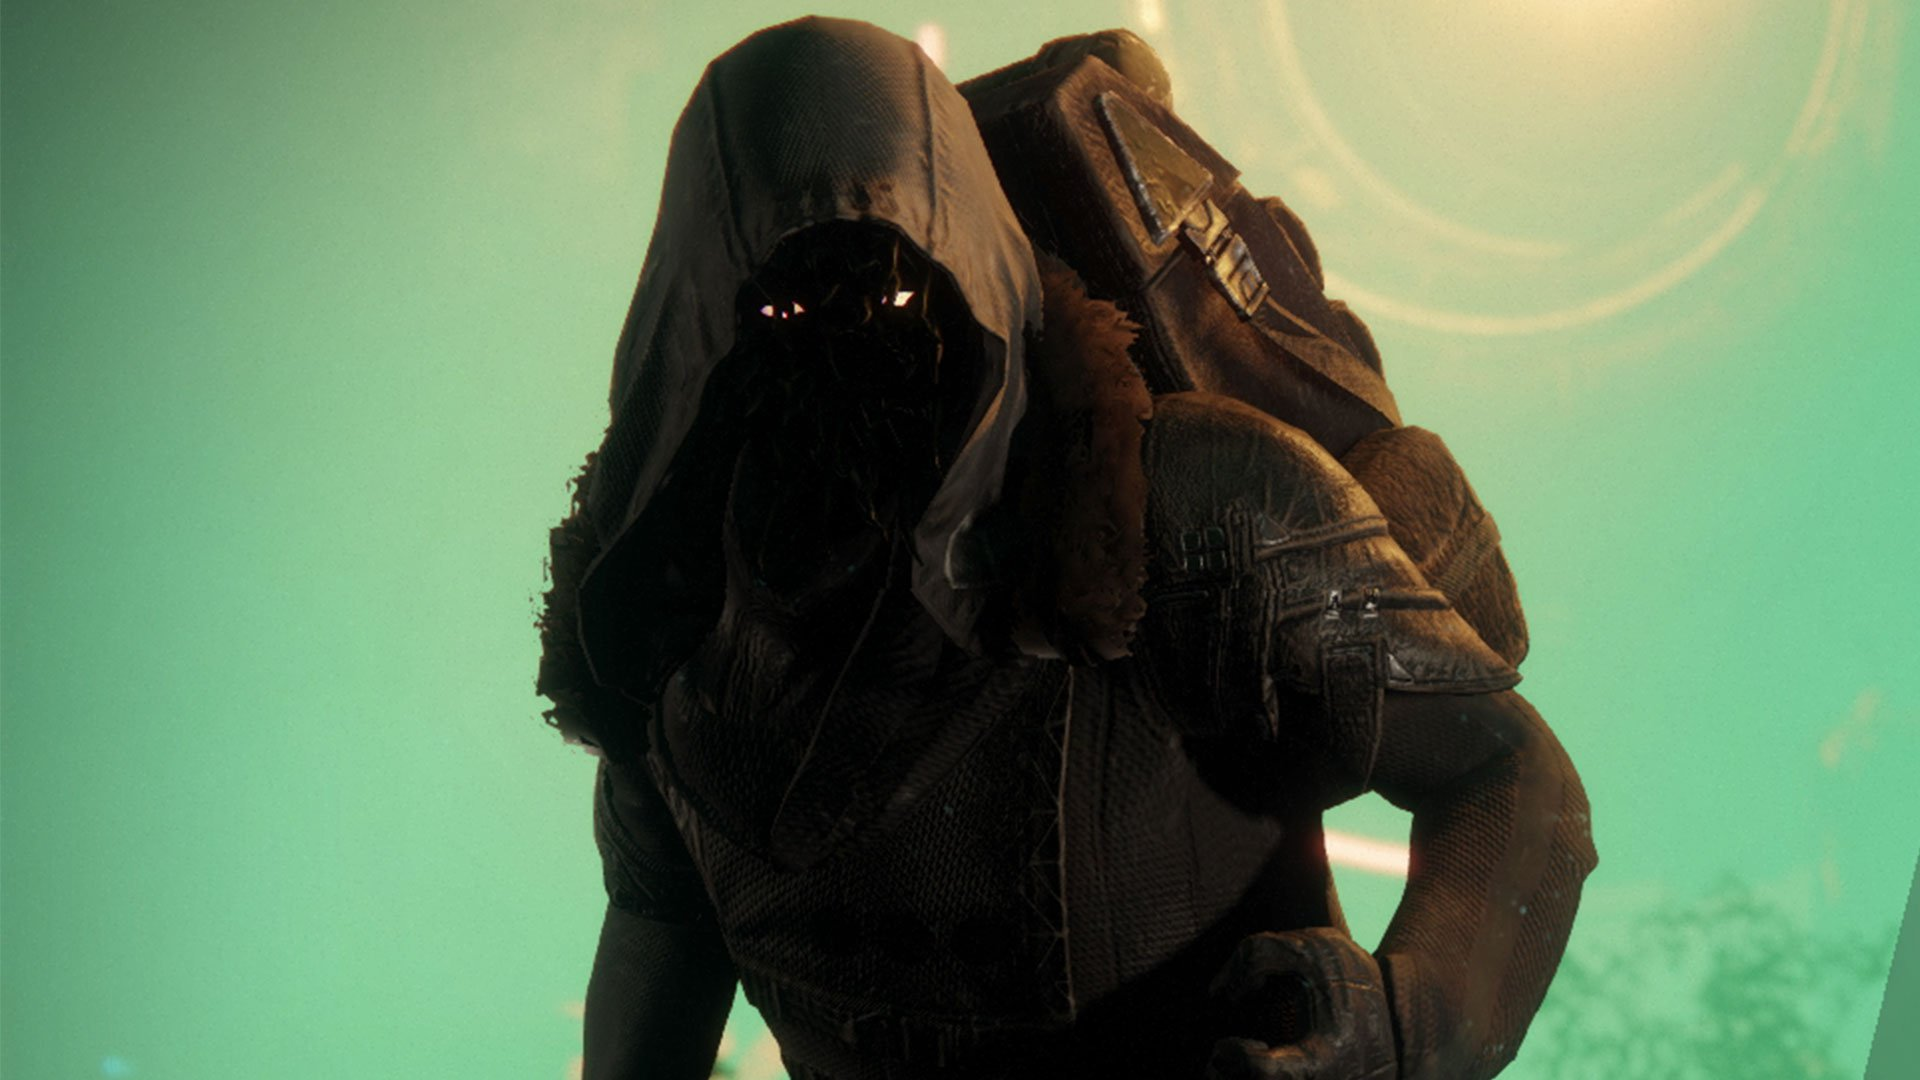 During the week of June 21 in Destiny 2, Xur can be found in the EDZ on Earth near the Winding Cove area.